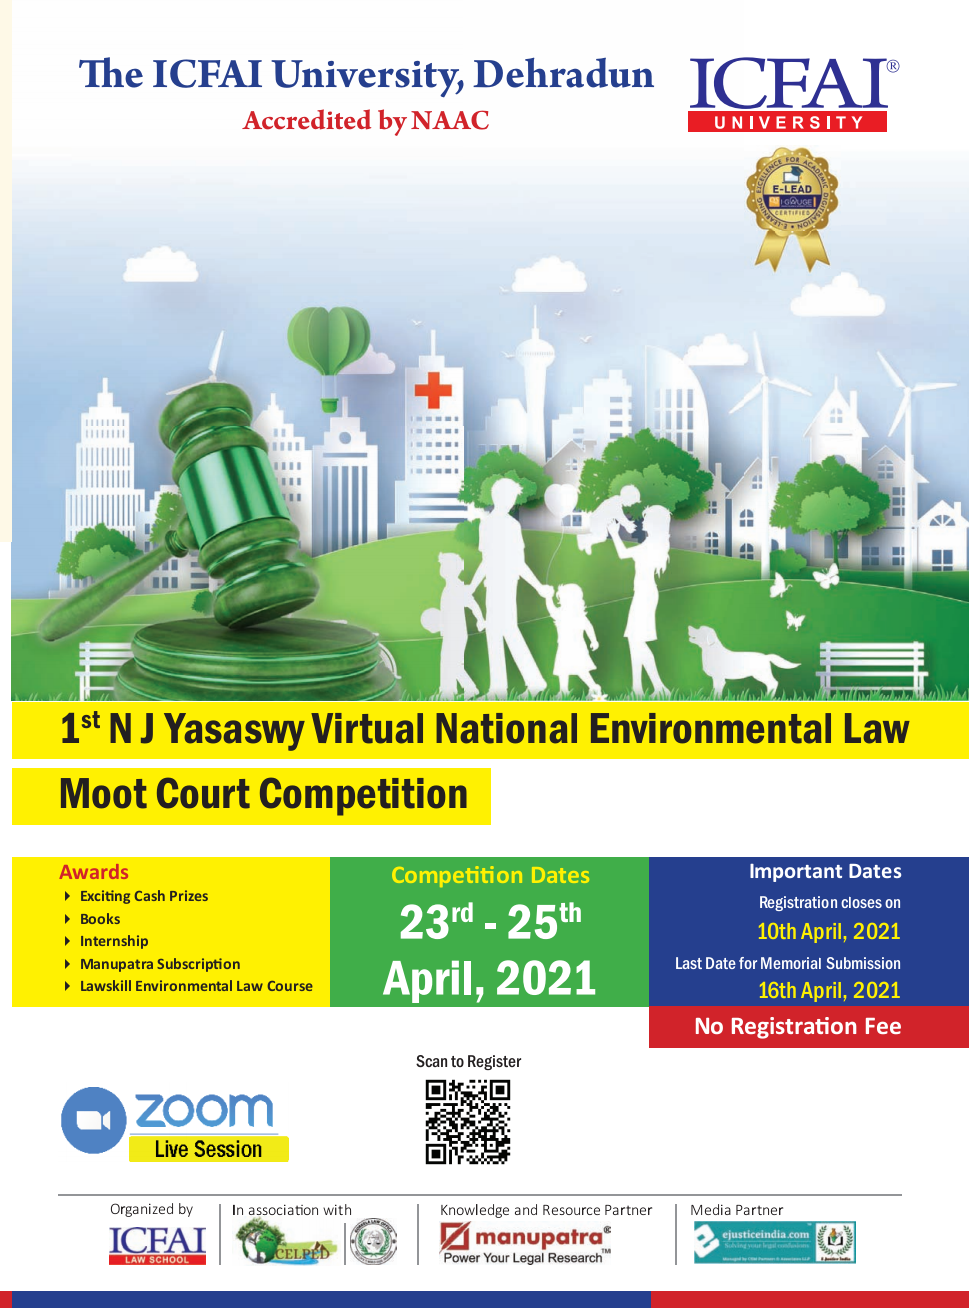 The ICFAI University Dehradun National Environmental Law Moot Court Competition, 2021: Register by 10th April